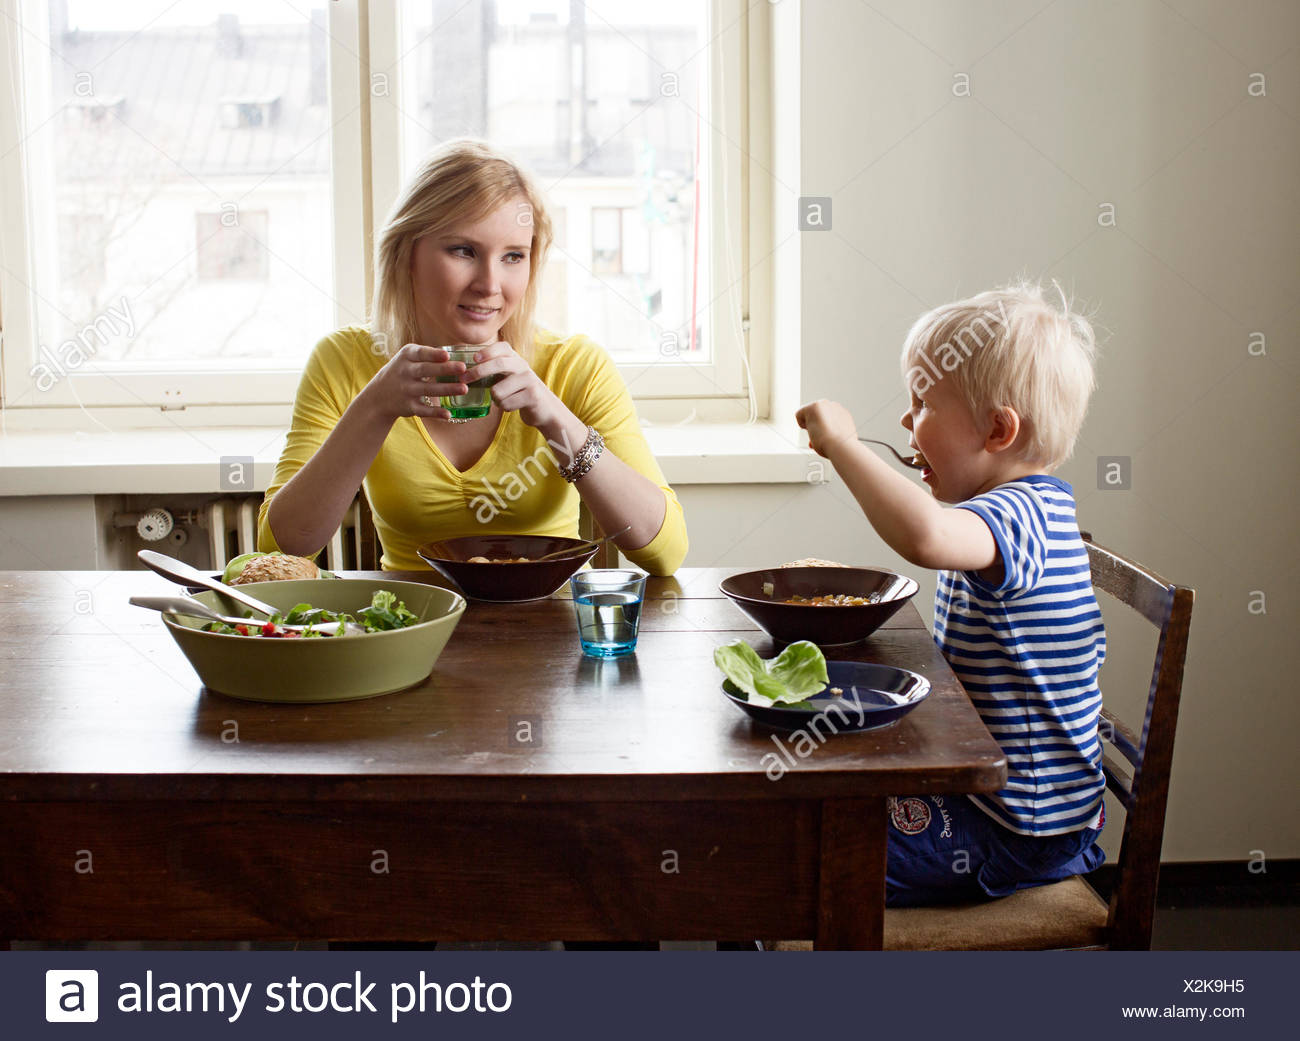 Finland, Helsinki, Kallio, Mother and son having lunch - Stock Image